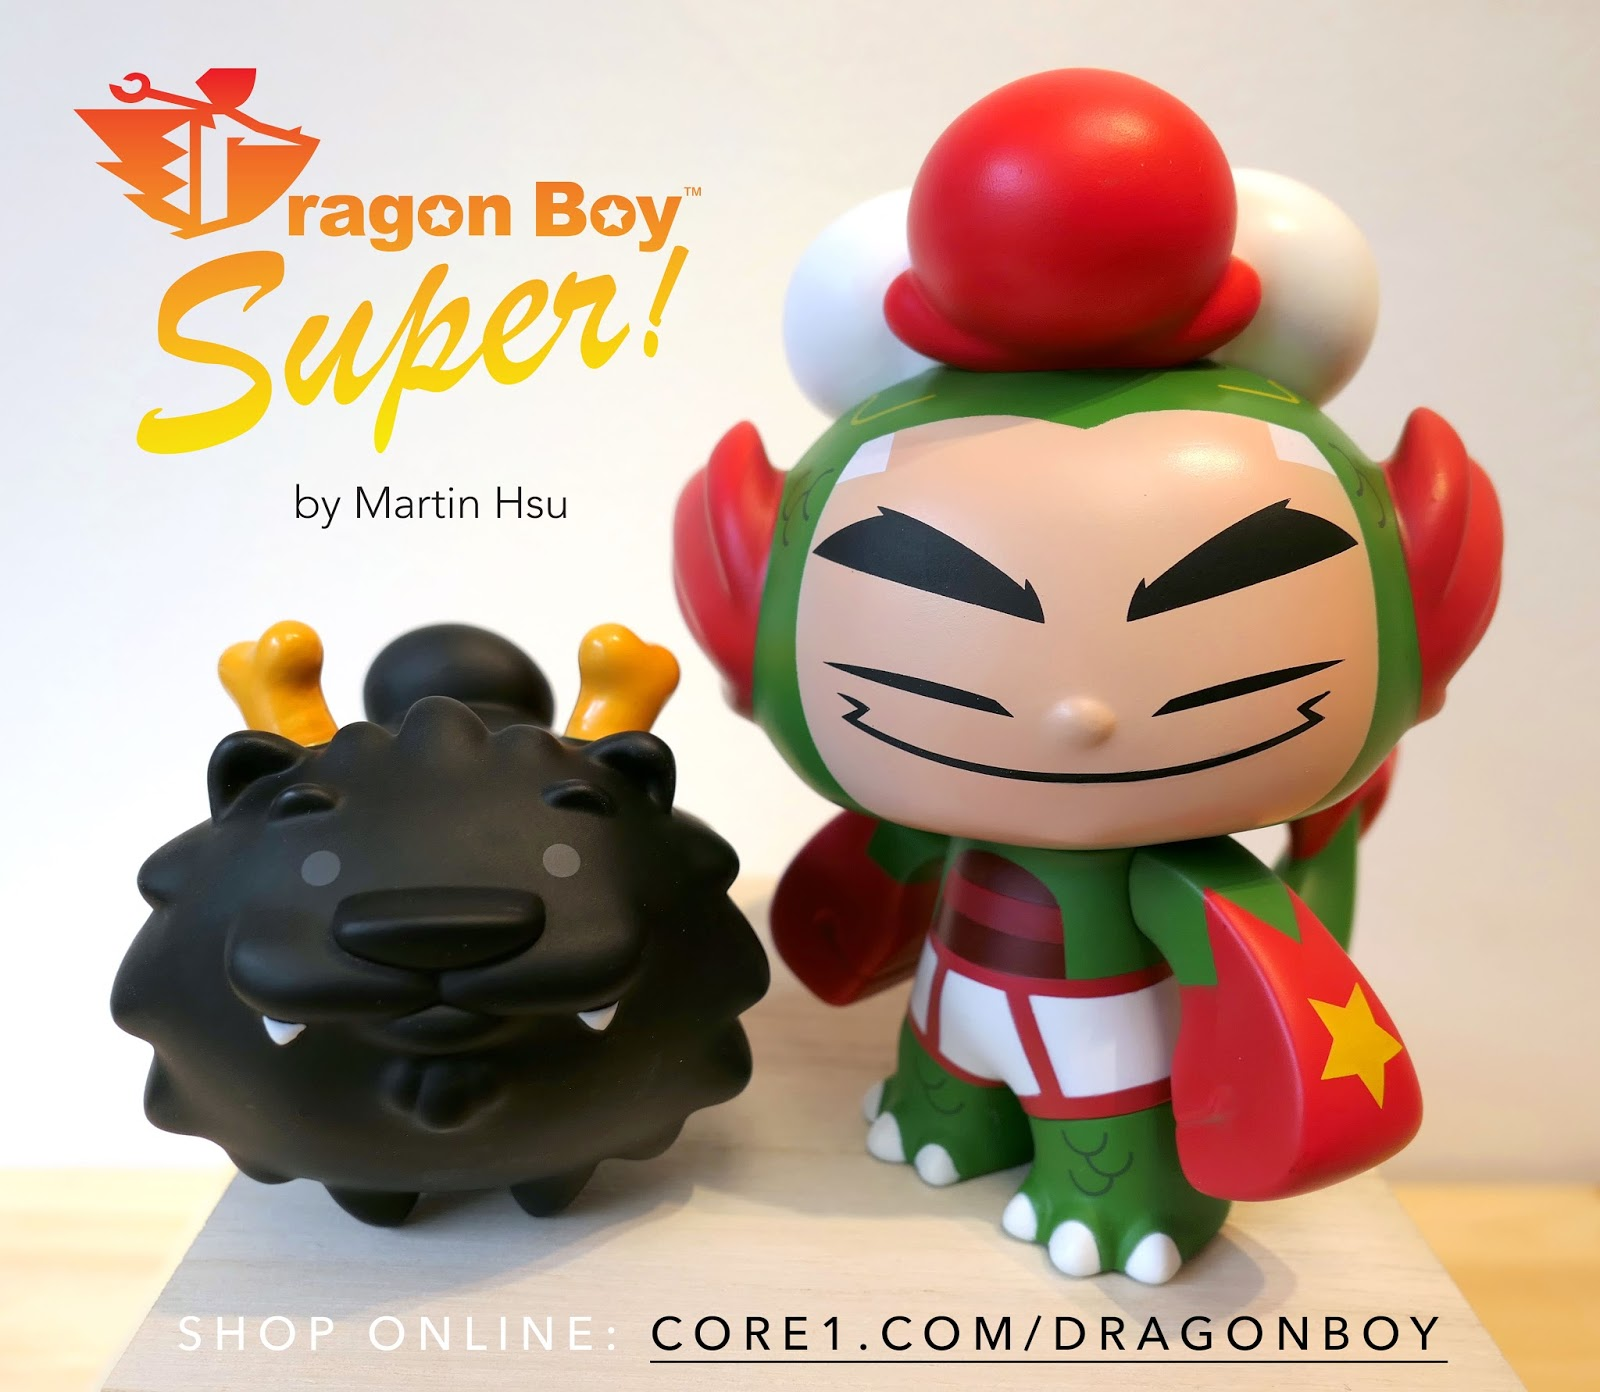 Jade Martin Hsu Simple martin hsu's dragon boy super for cyber monday release (24hrs order)